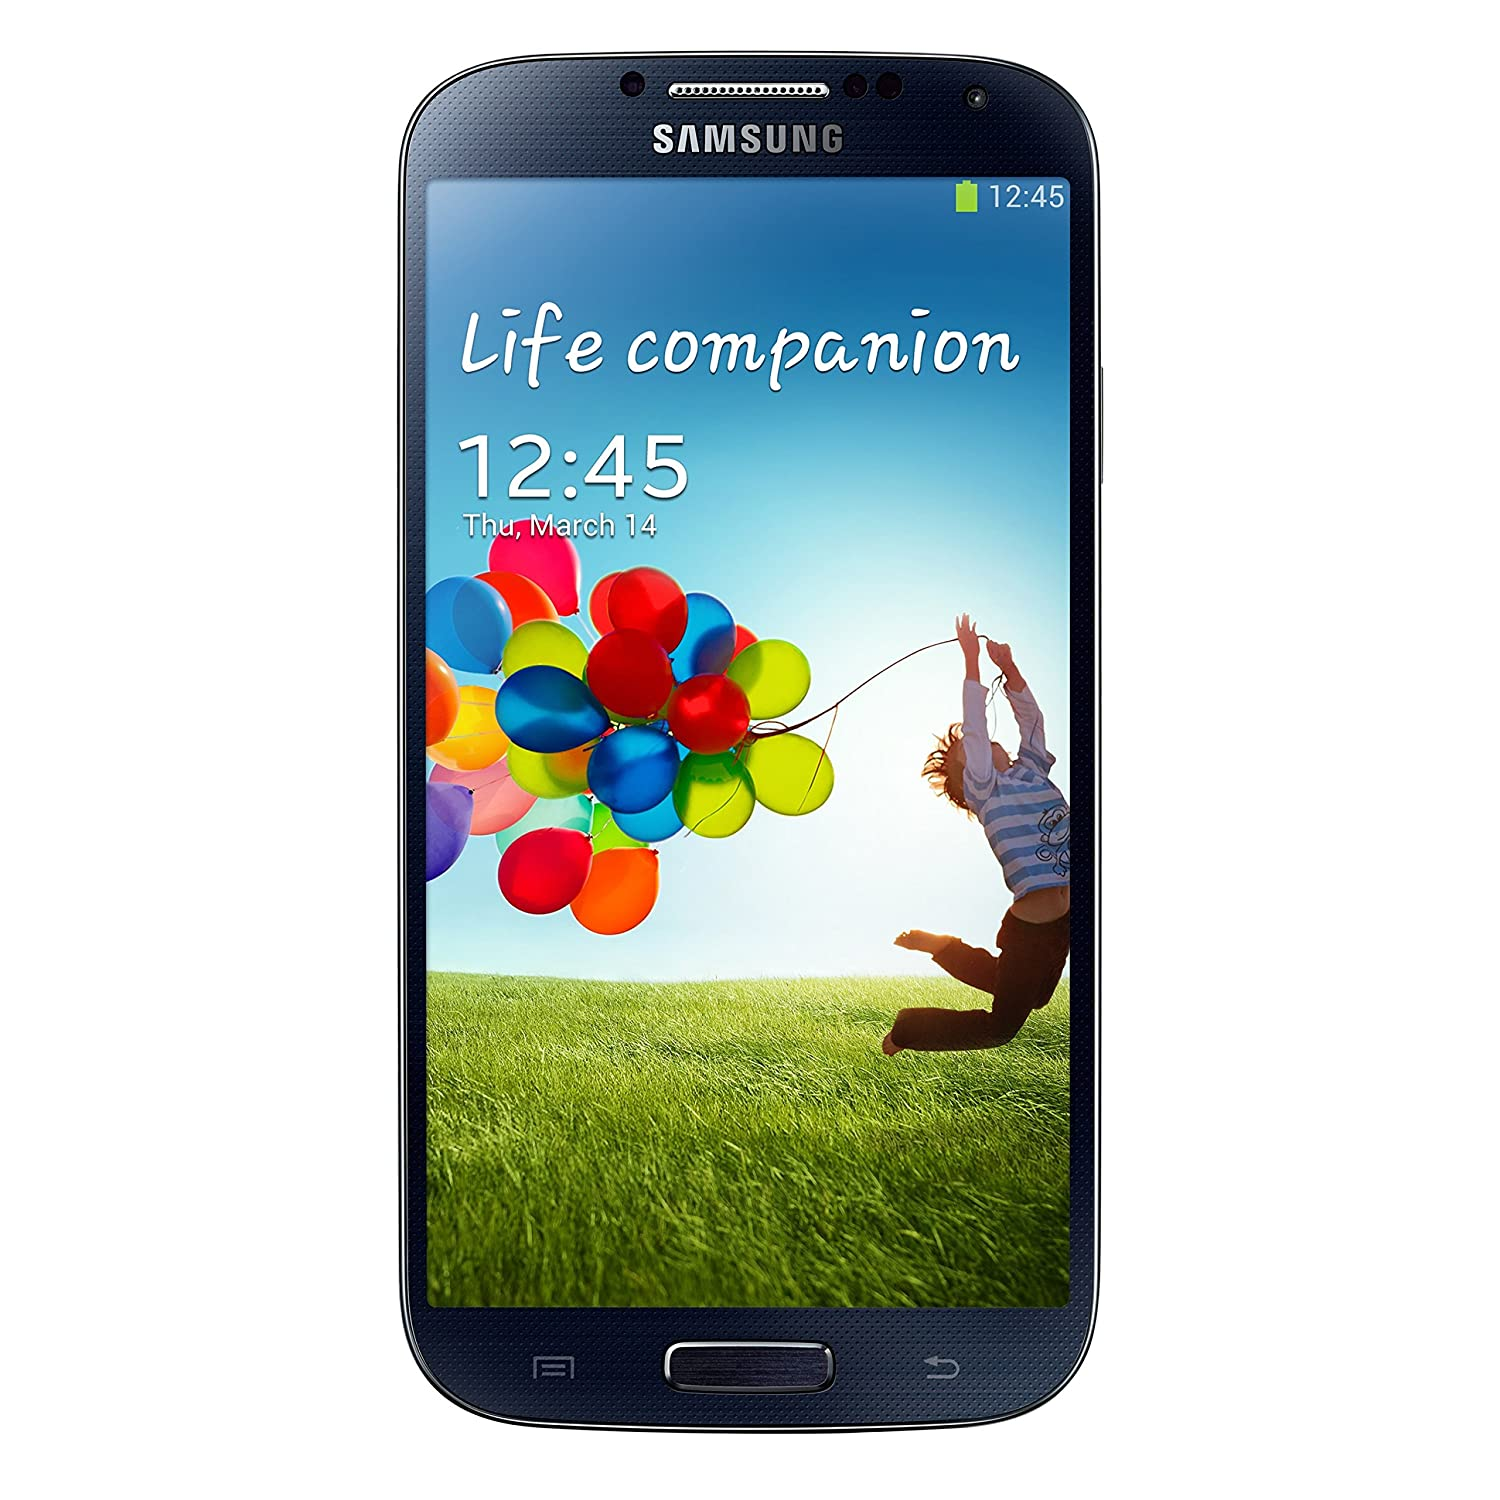 Samsung Galaxy S4 Sgh I337 Unlocked Gsm Smartphone With 13 Mp Camera Touchscreen And 16 Gb Storage Black International Version